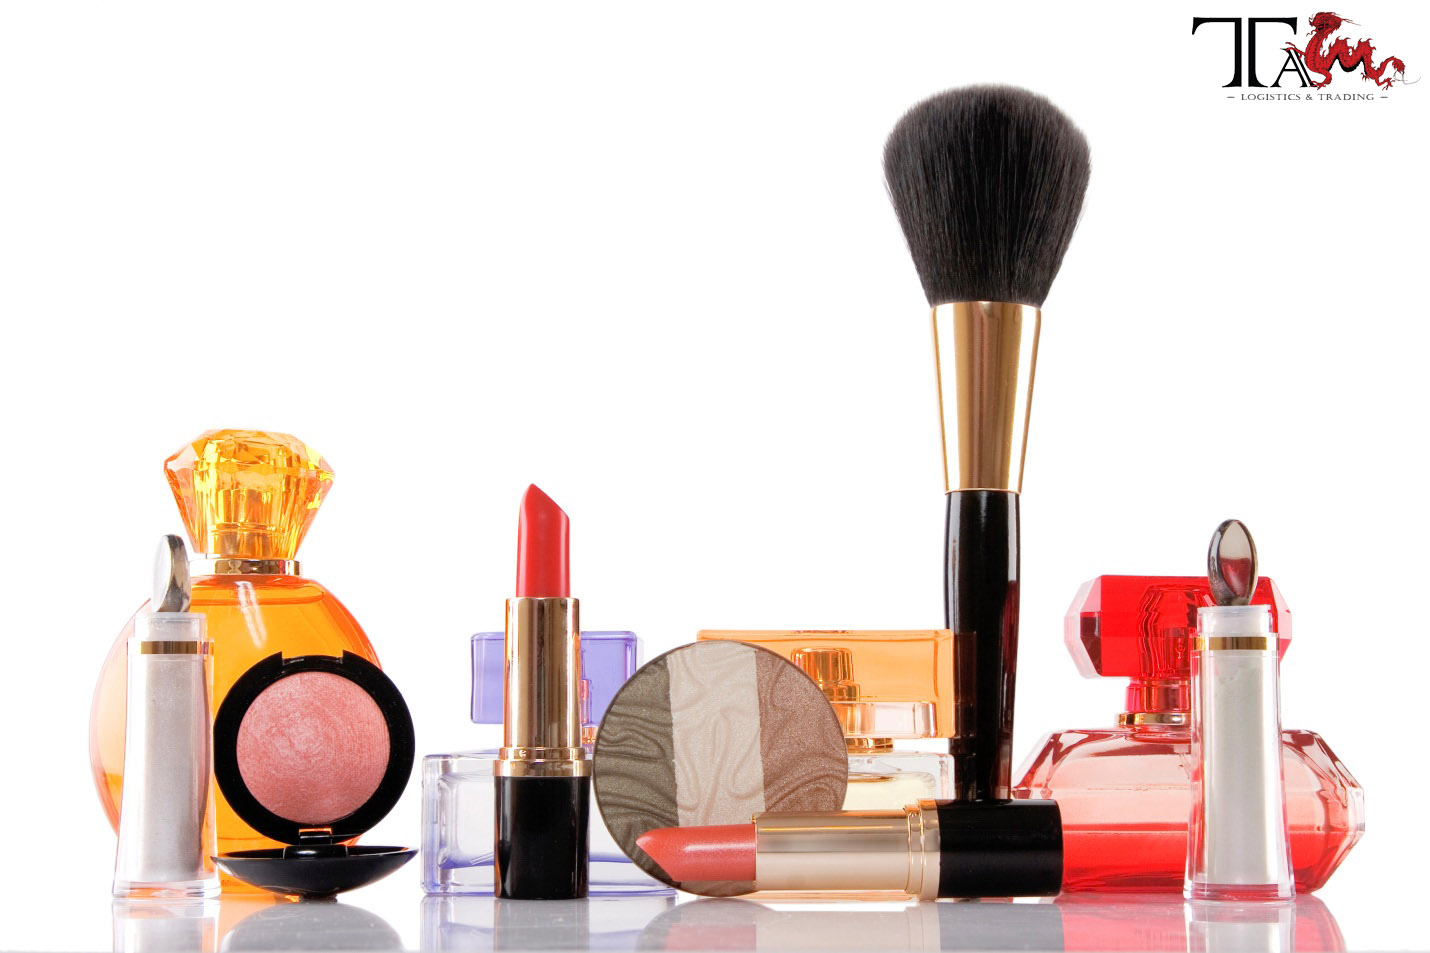 PROCESS OF PROCEDURES FOR IMPORTING COSMETICS